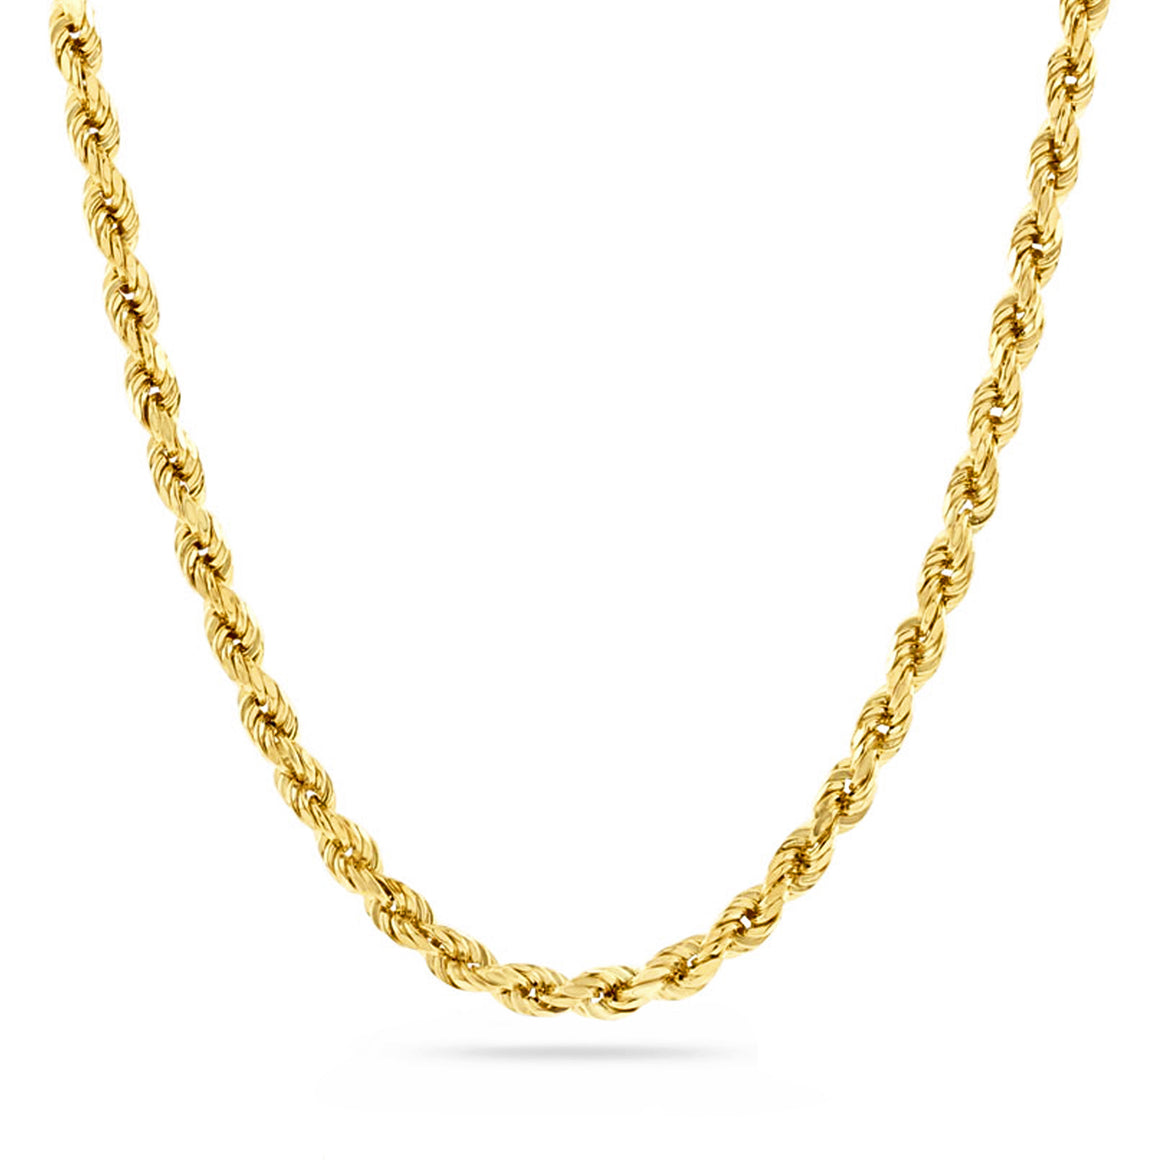 3mm Diamond Cut Rope Chain, Gold